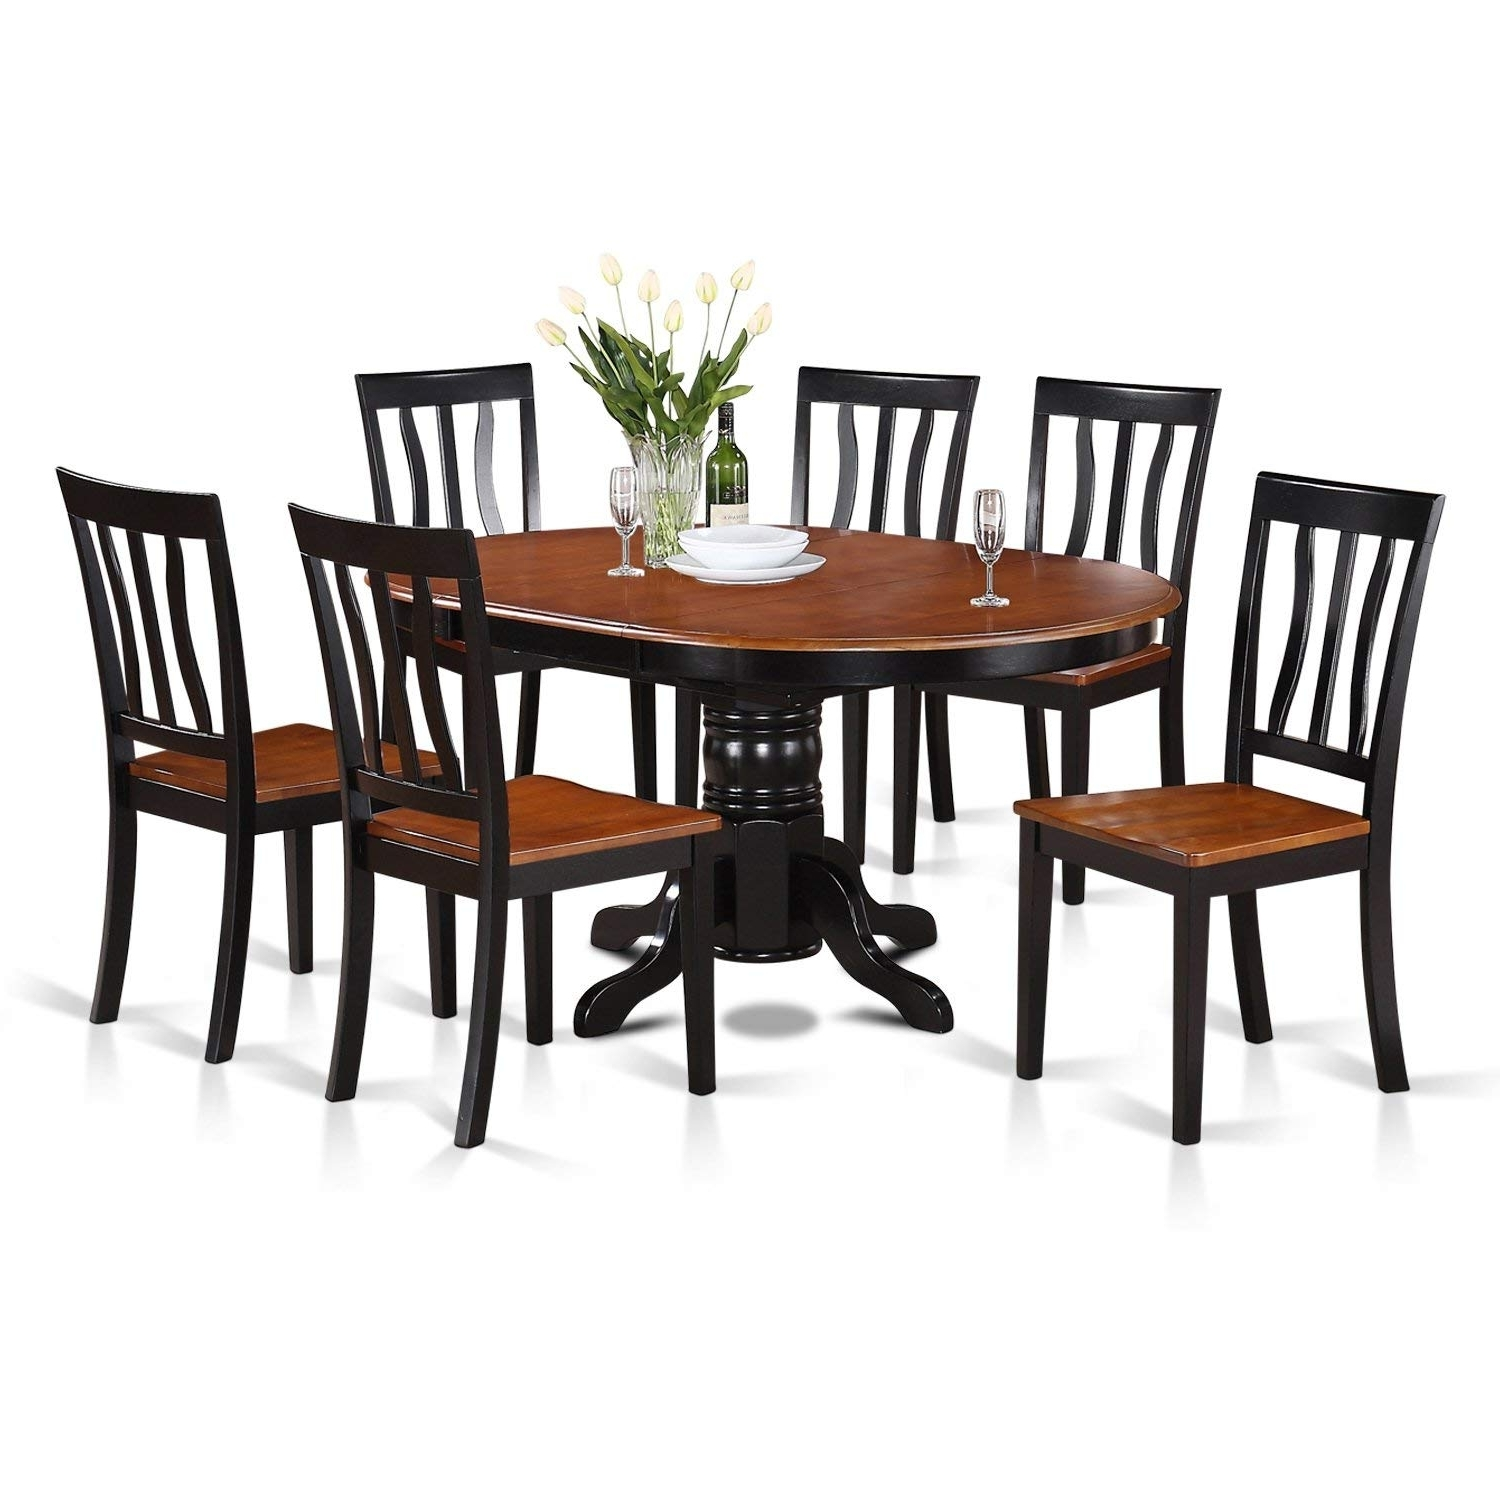 Logan 7 Piece Dining Sets Throughout Most Current Amazon: East West Furniture Avat7 Blk W 7 Piece Dining Table Set (View 11 of 25)